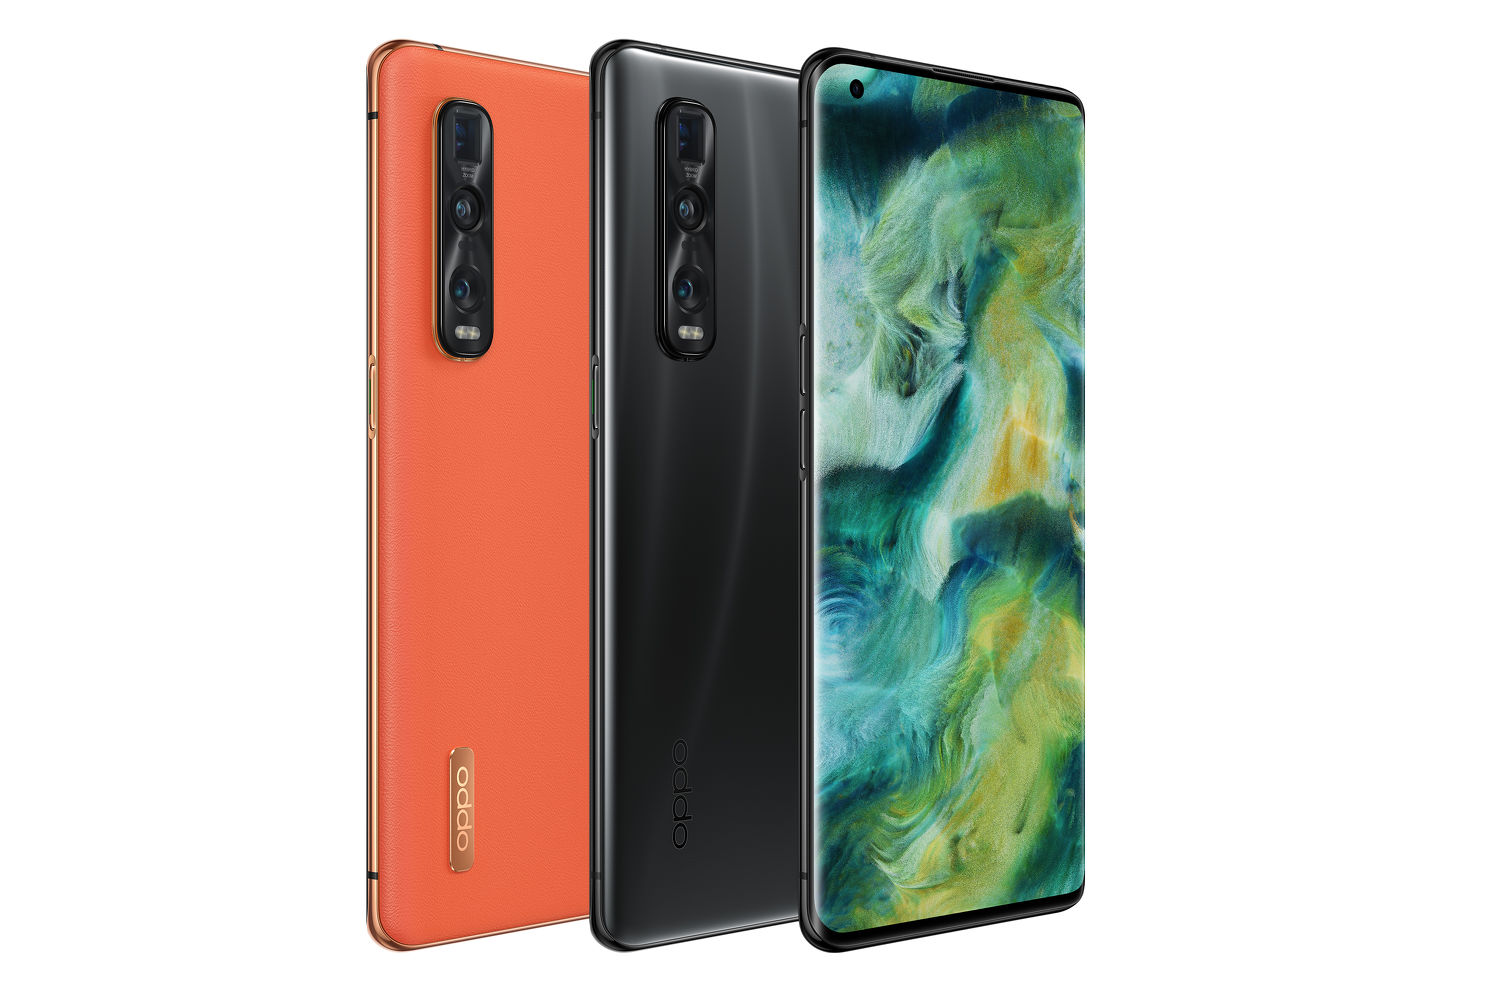 Oppo-Find-X2-Pro-family - THE EDGE SINGAPORE